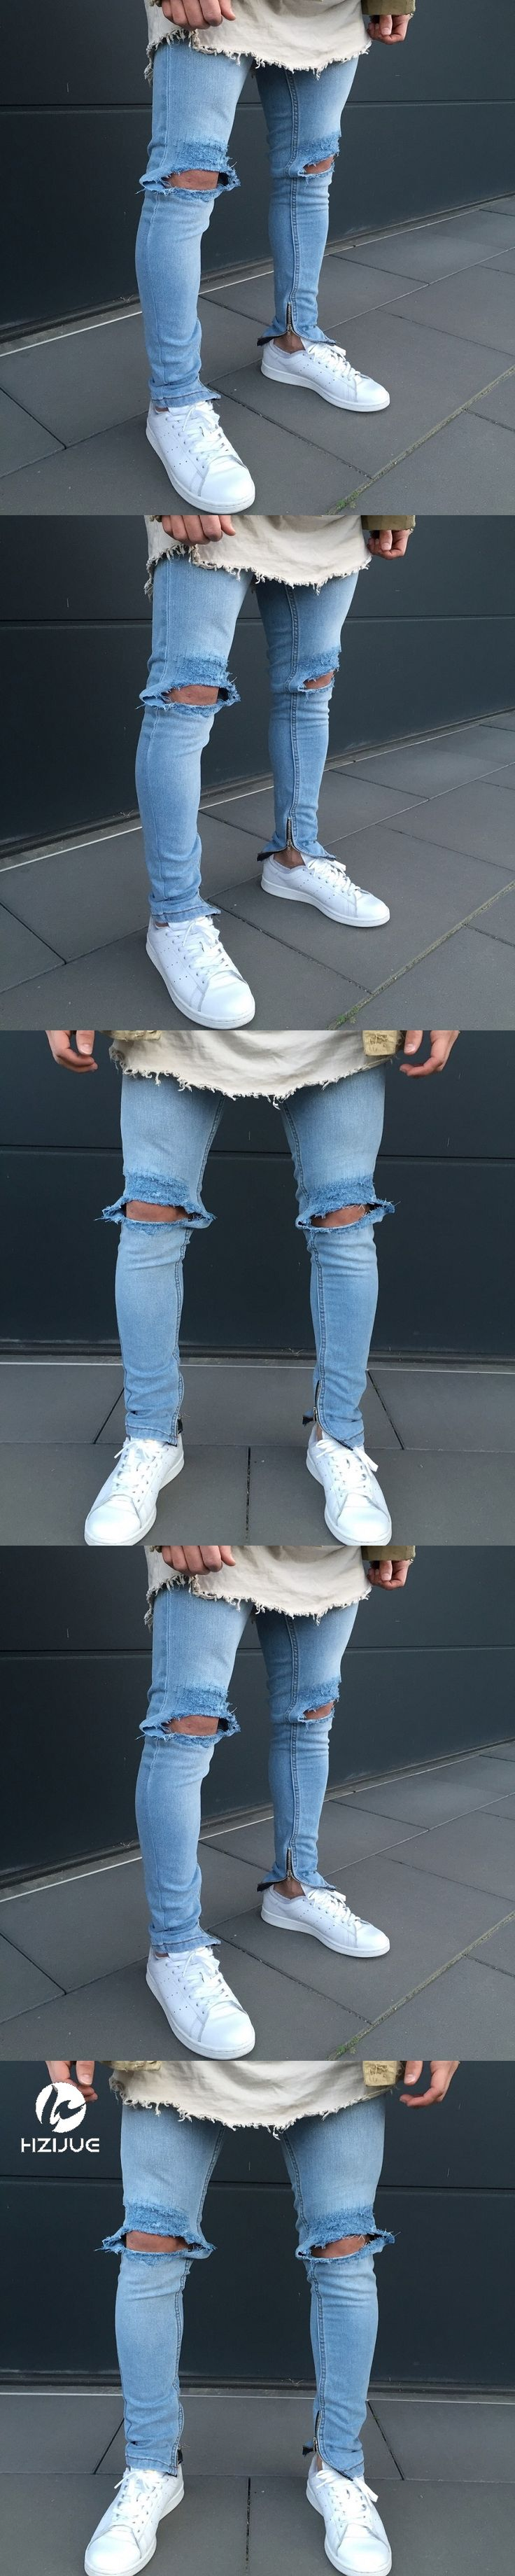 Fashion Men`s Skinny Jeans Washed Vintage Faded Ripped Distressed Slim Fit Stretchy Jegging Denim Pants Jeans With Big Hole